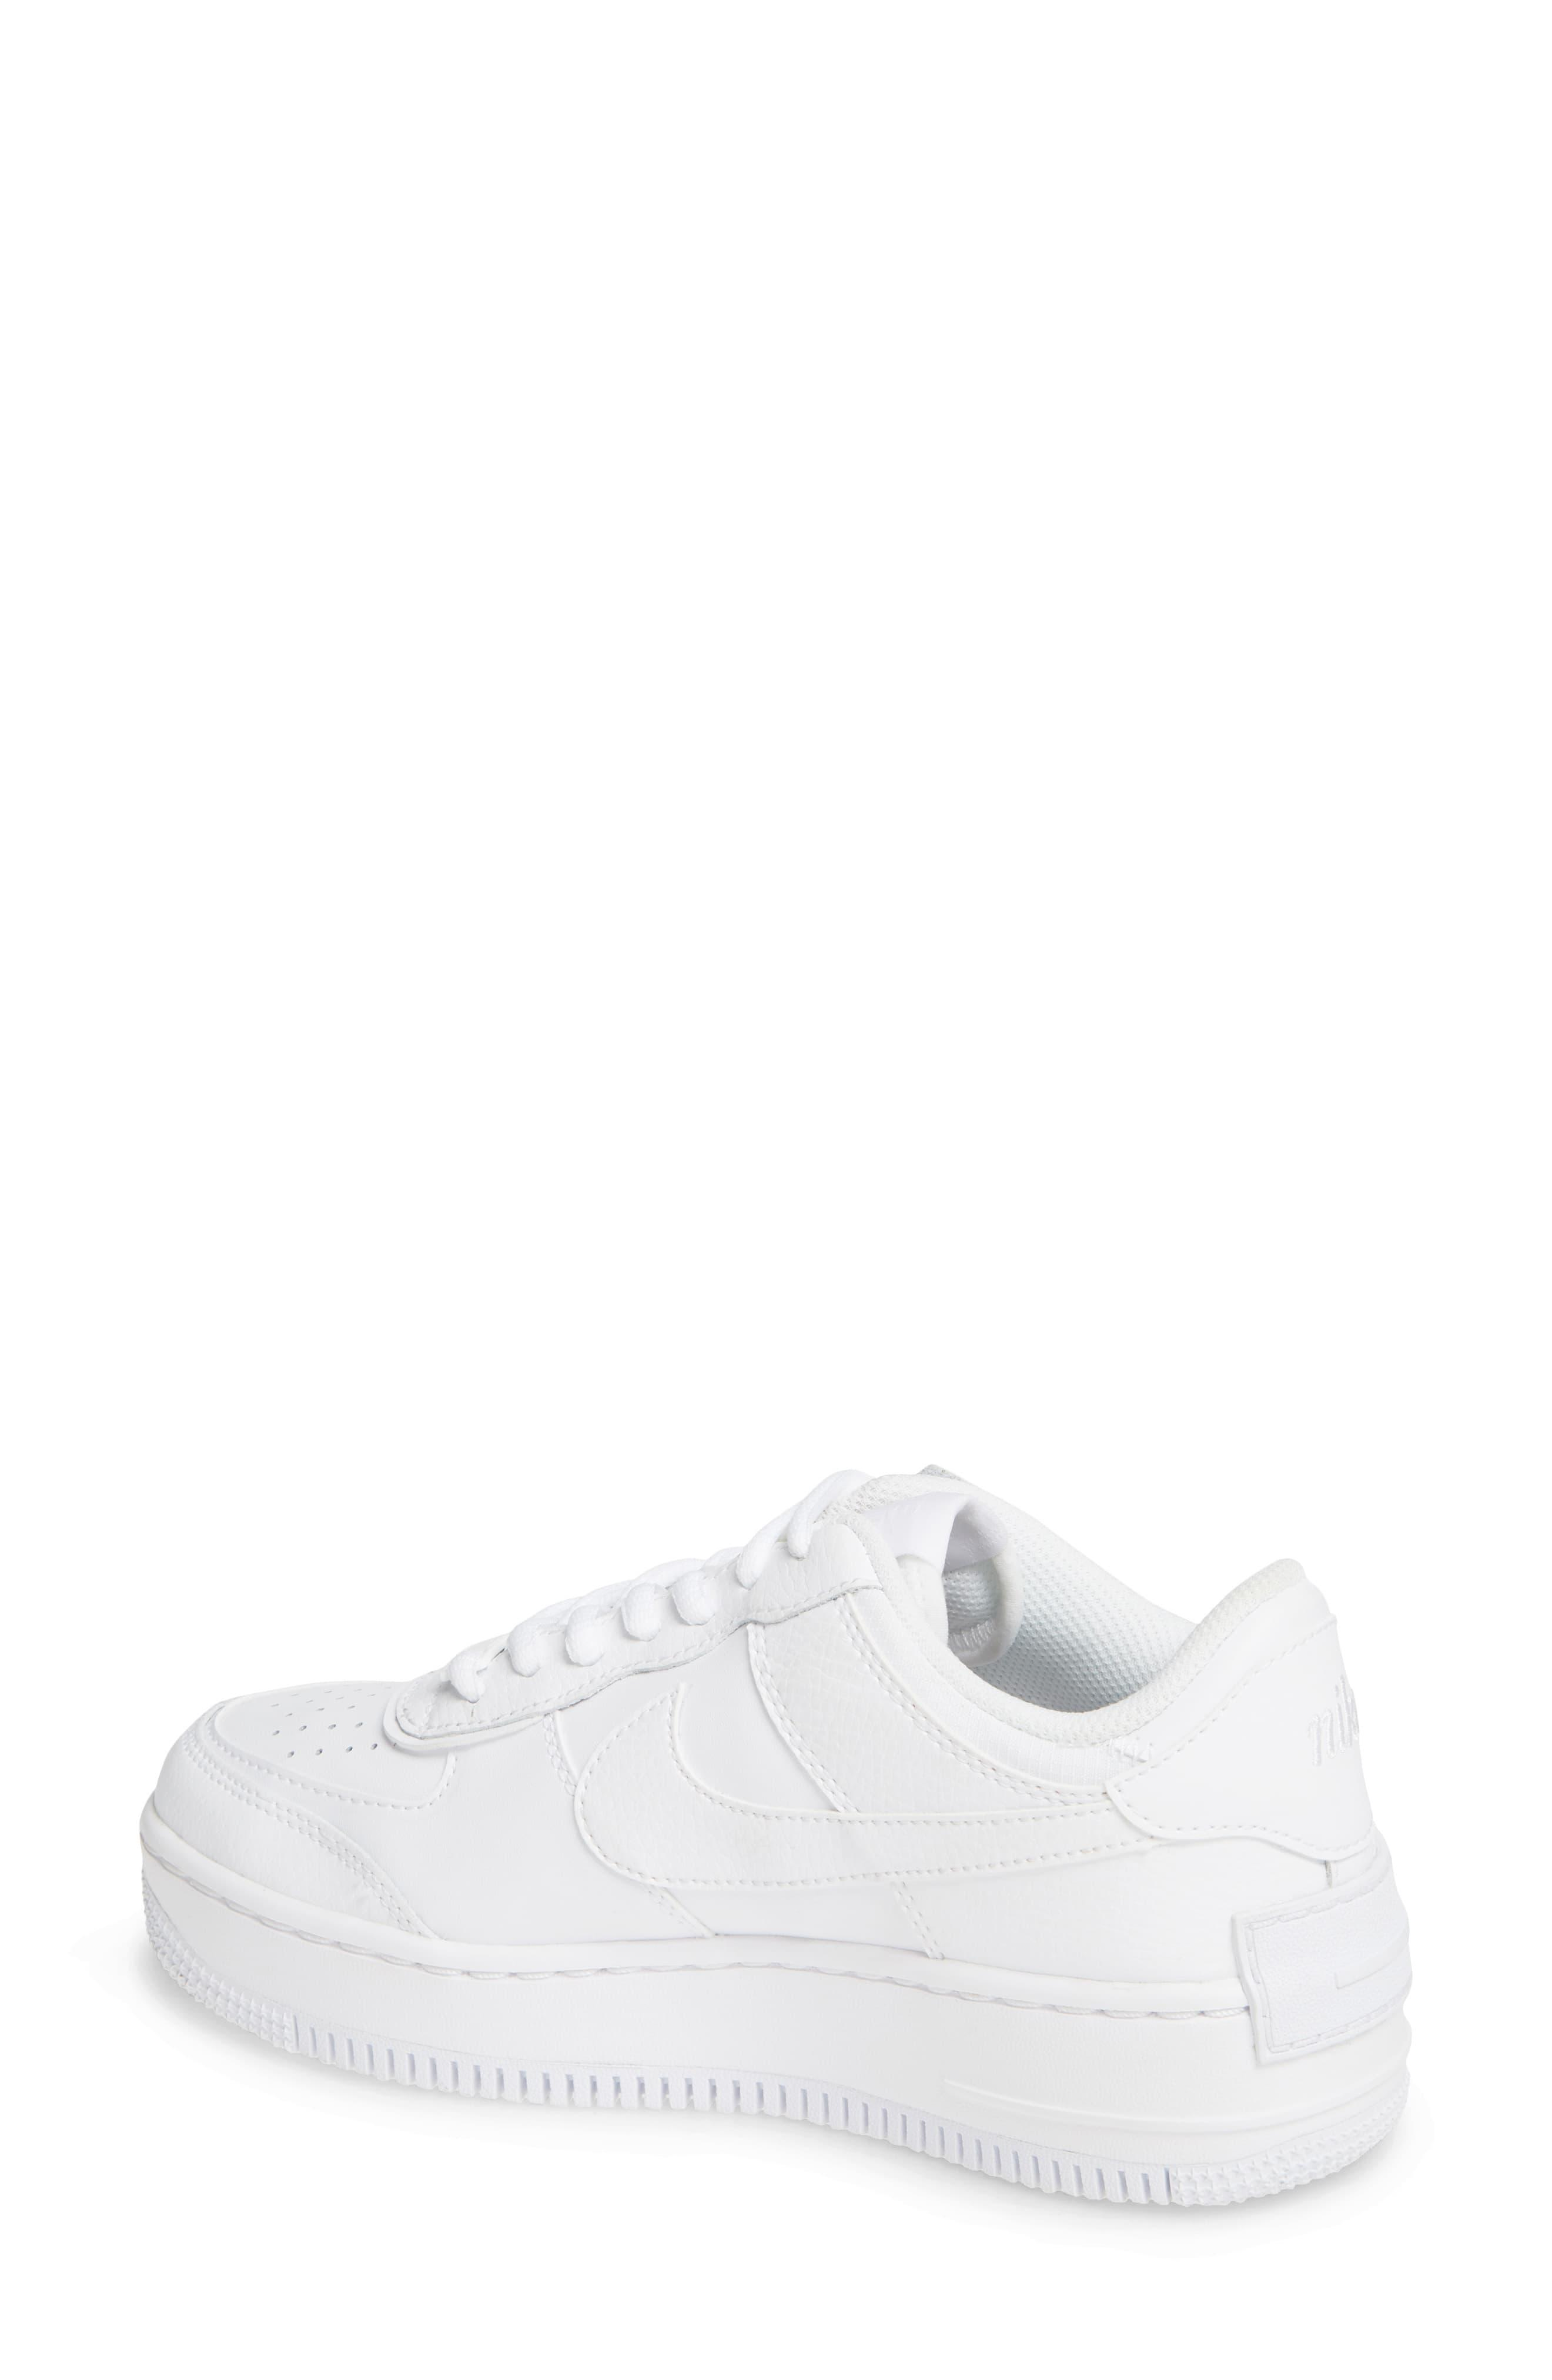 Nike Air Force 1 Shadow Sneaker In White White White White Lyst Кожа, синтетика, текстиль, пластик, резина. lyst